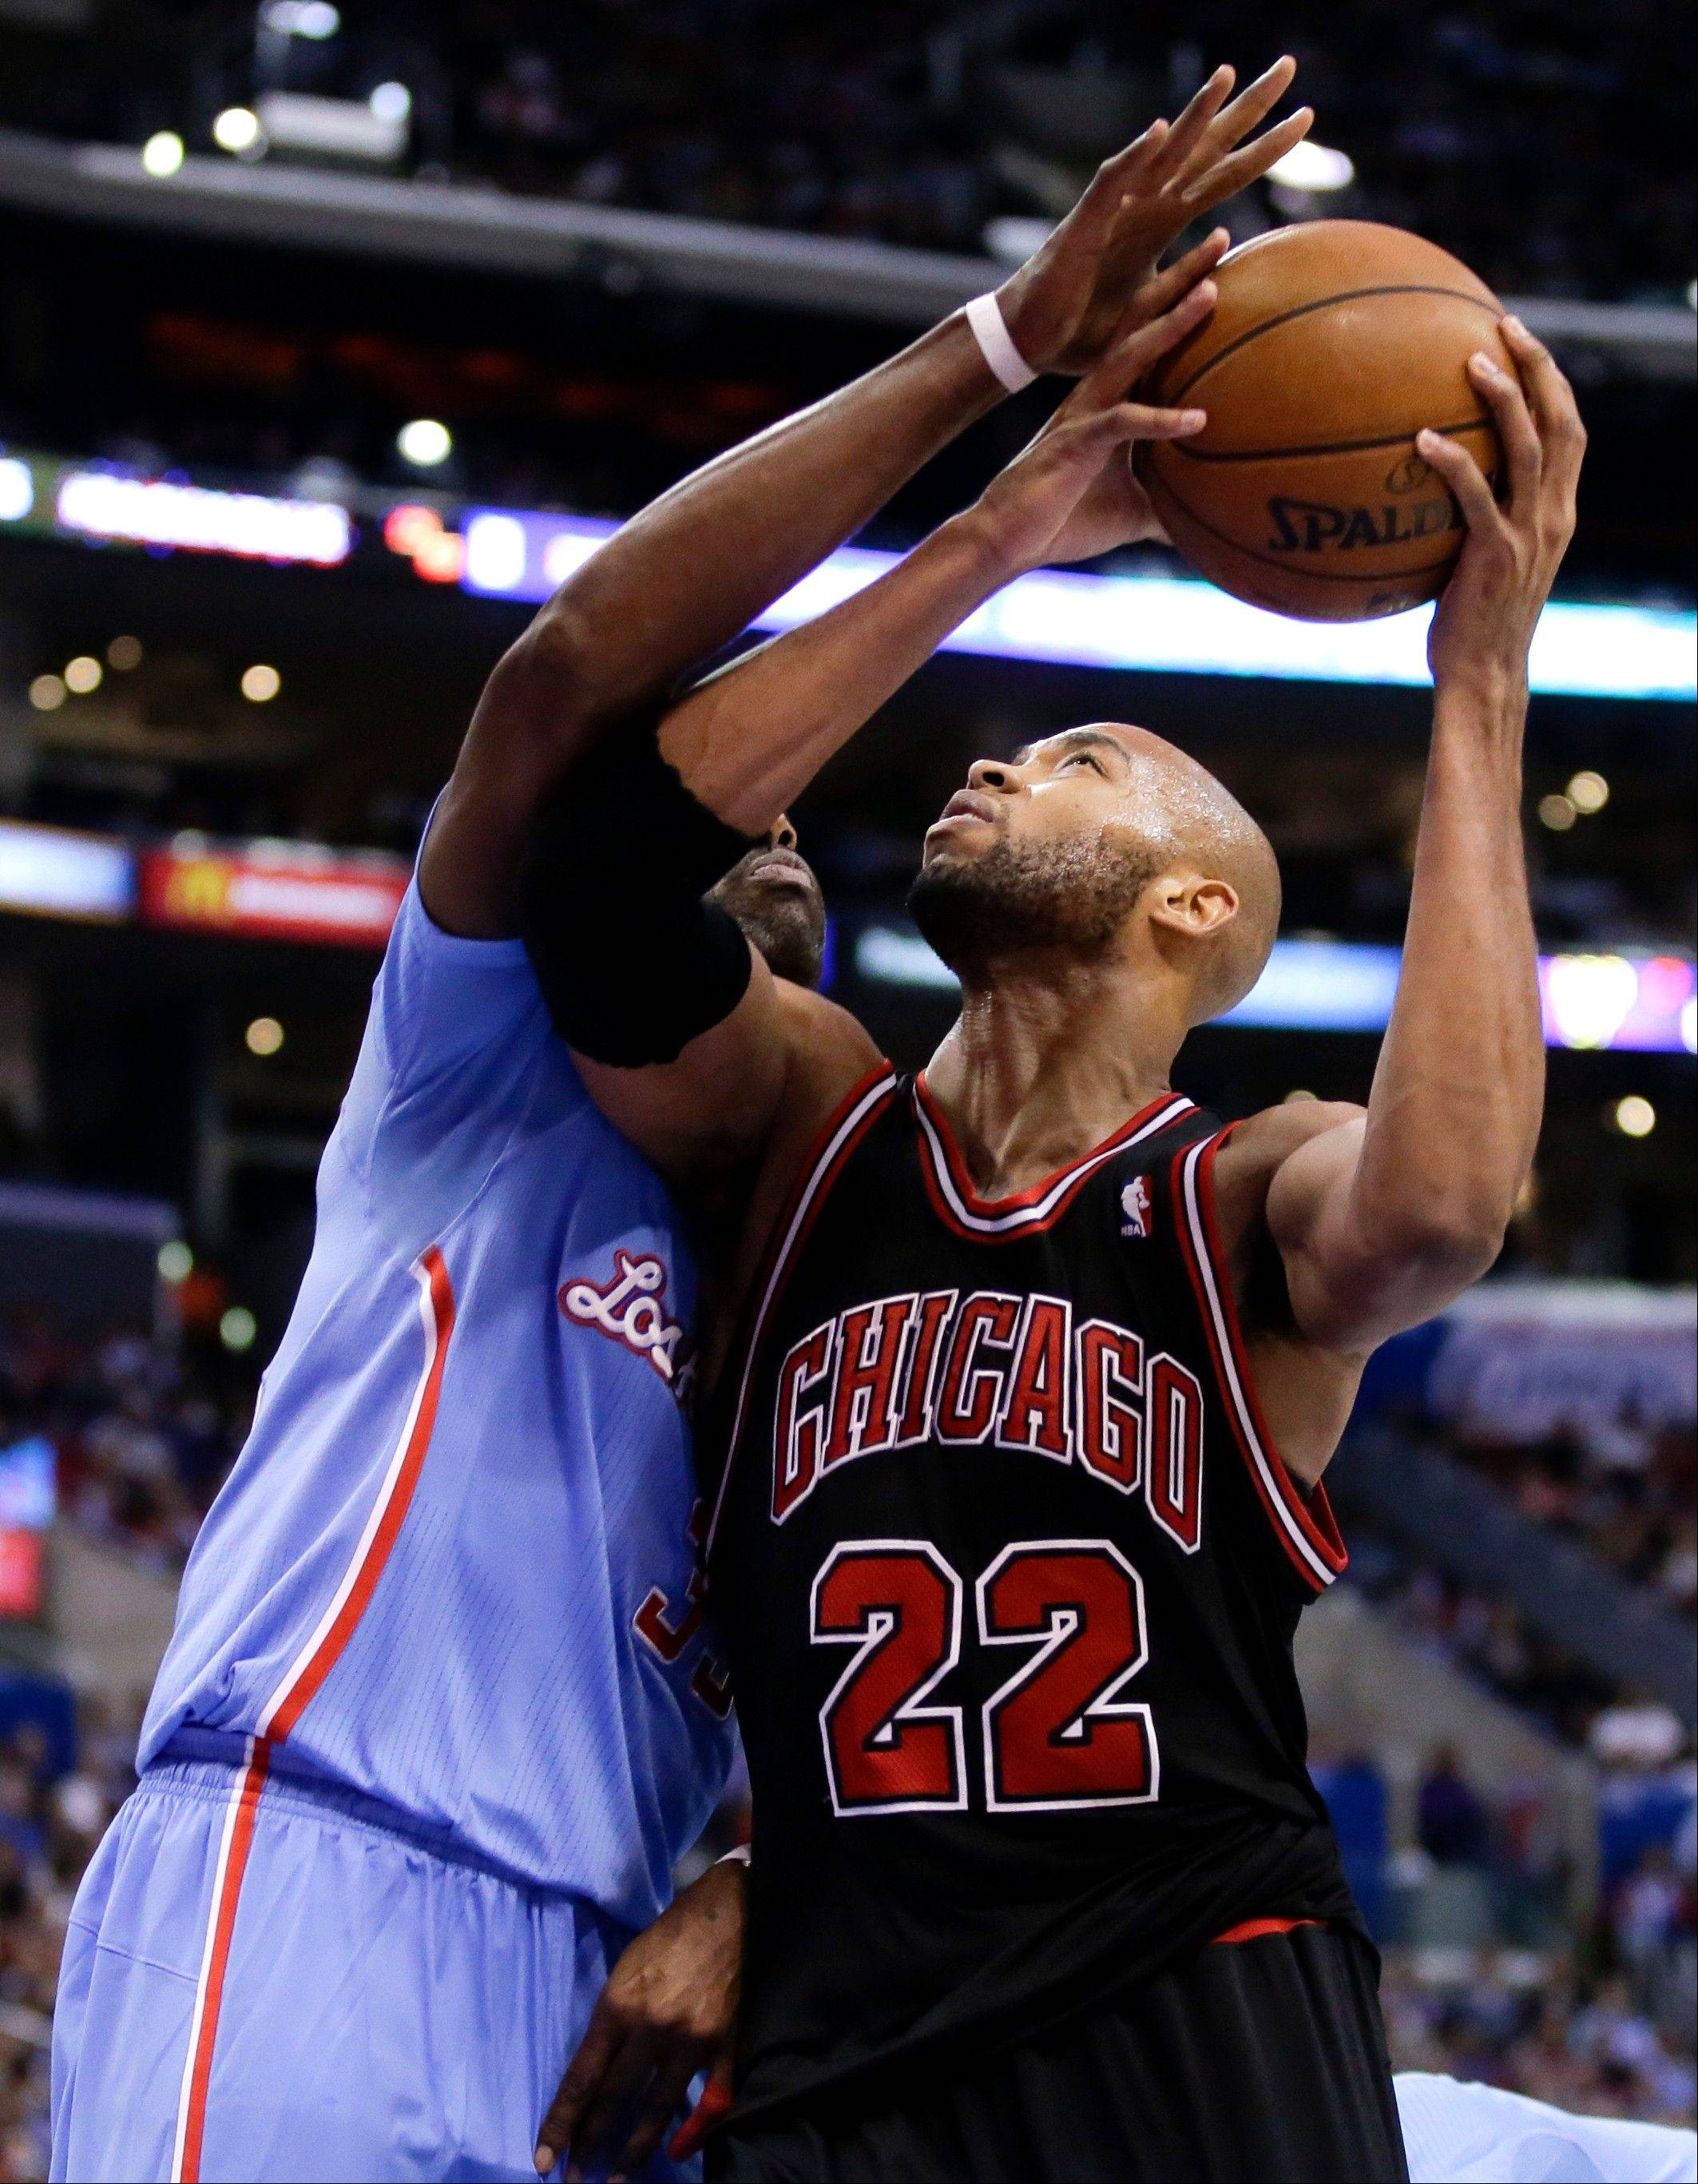 Los Angeles Clippers forward Antawn Jamison, left, blocks a shot by Chicago Bulls forward Taj Gibson (22) during the second half of an NBA basketball game in Los Angeles, Sunday, Nov. 24, 2013. The Clippers won 121-82.